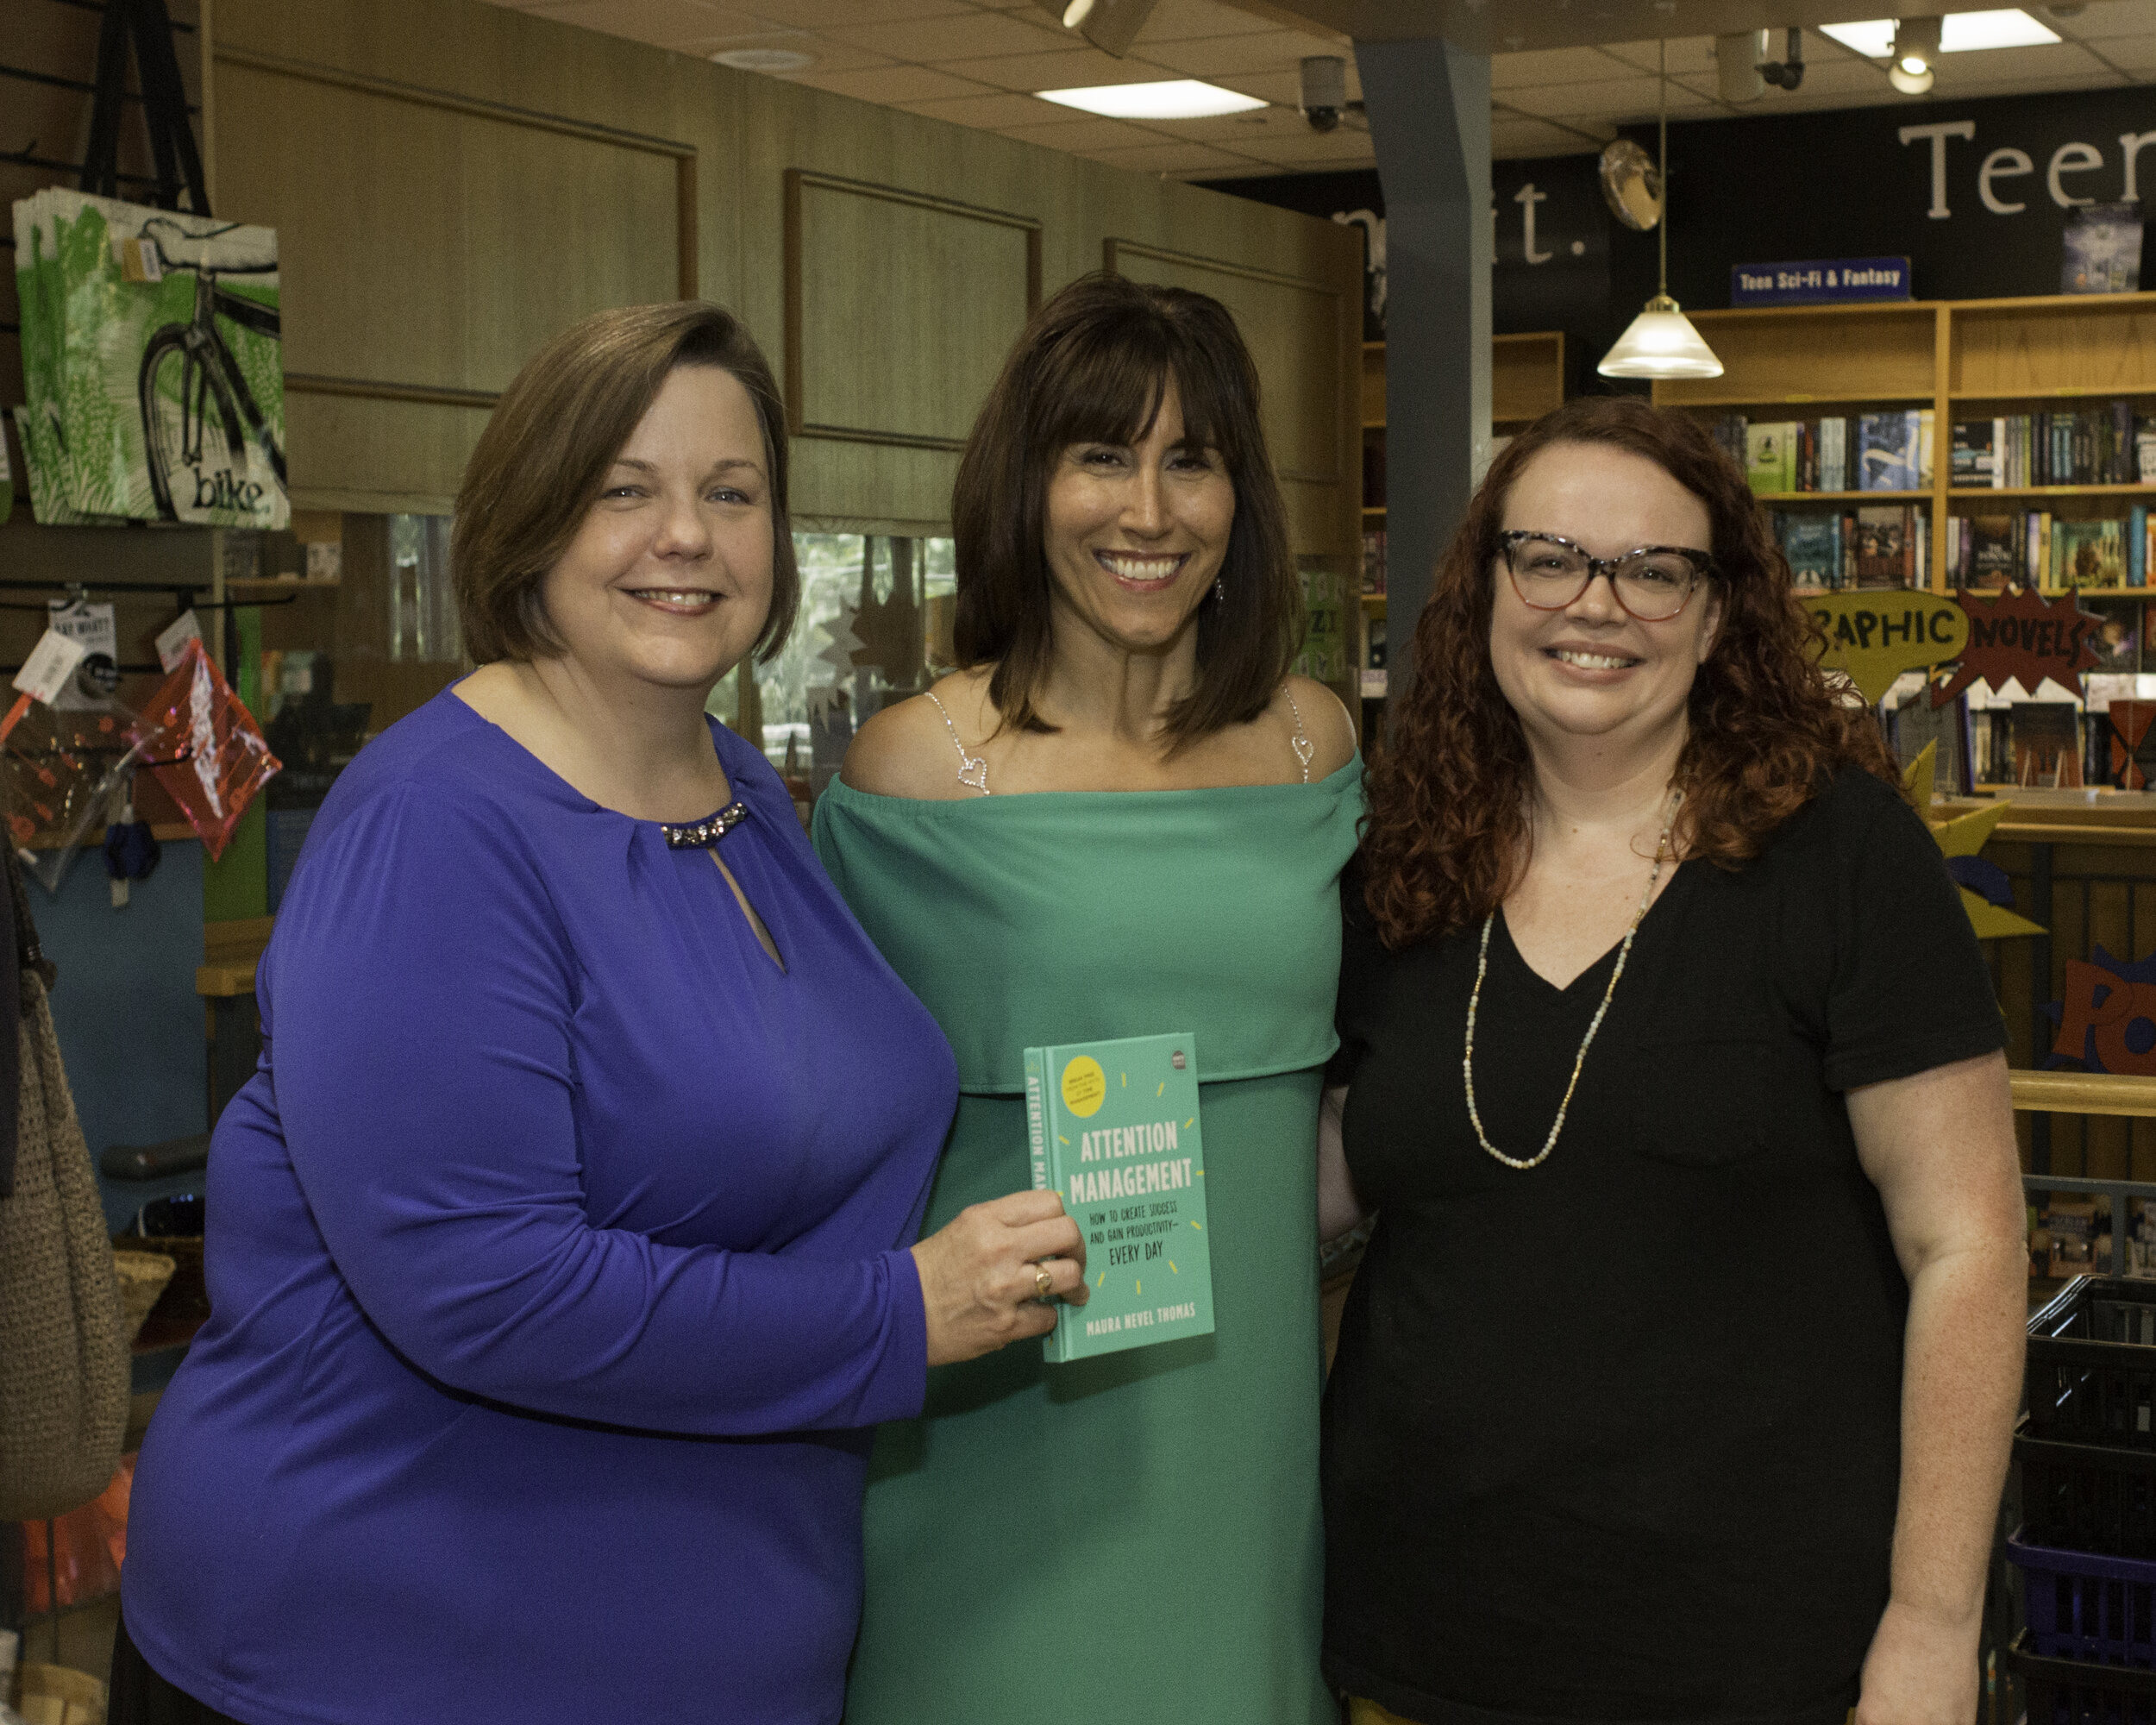 KUT's Jennifer Stayton, Maura Nevel Thomas, and Ami Kane celebrate Maura's new book  ATTENTION MANAGEMENT: How to Create Success and Gain Productivity Every Day  at BookPeople on September 7th. Jennifer and Maura held a book talk in front of a full house, followed by a Q&A and book signing. The success of the book launch created an opportunity to make a donation to Girls Empowerment Network. We are grateful to Maura for this gift, and appreciate her as a former board member who continues to support our programs with her time and talent.